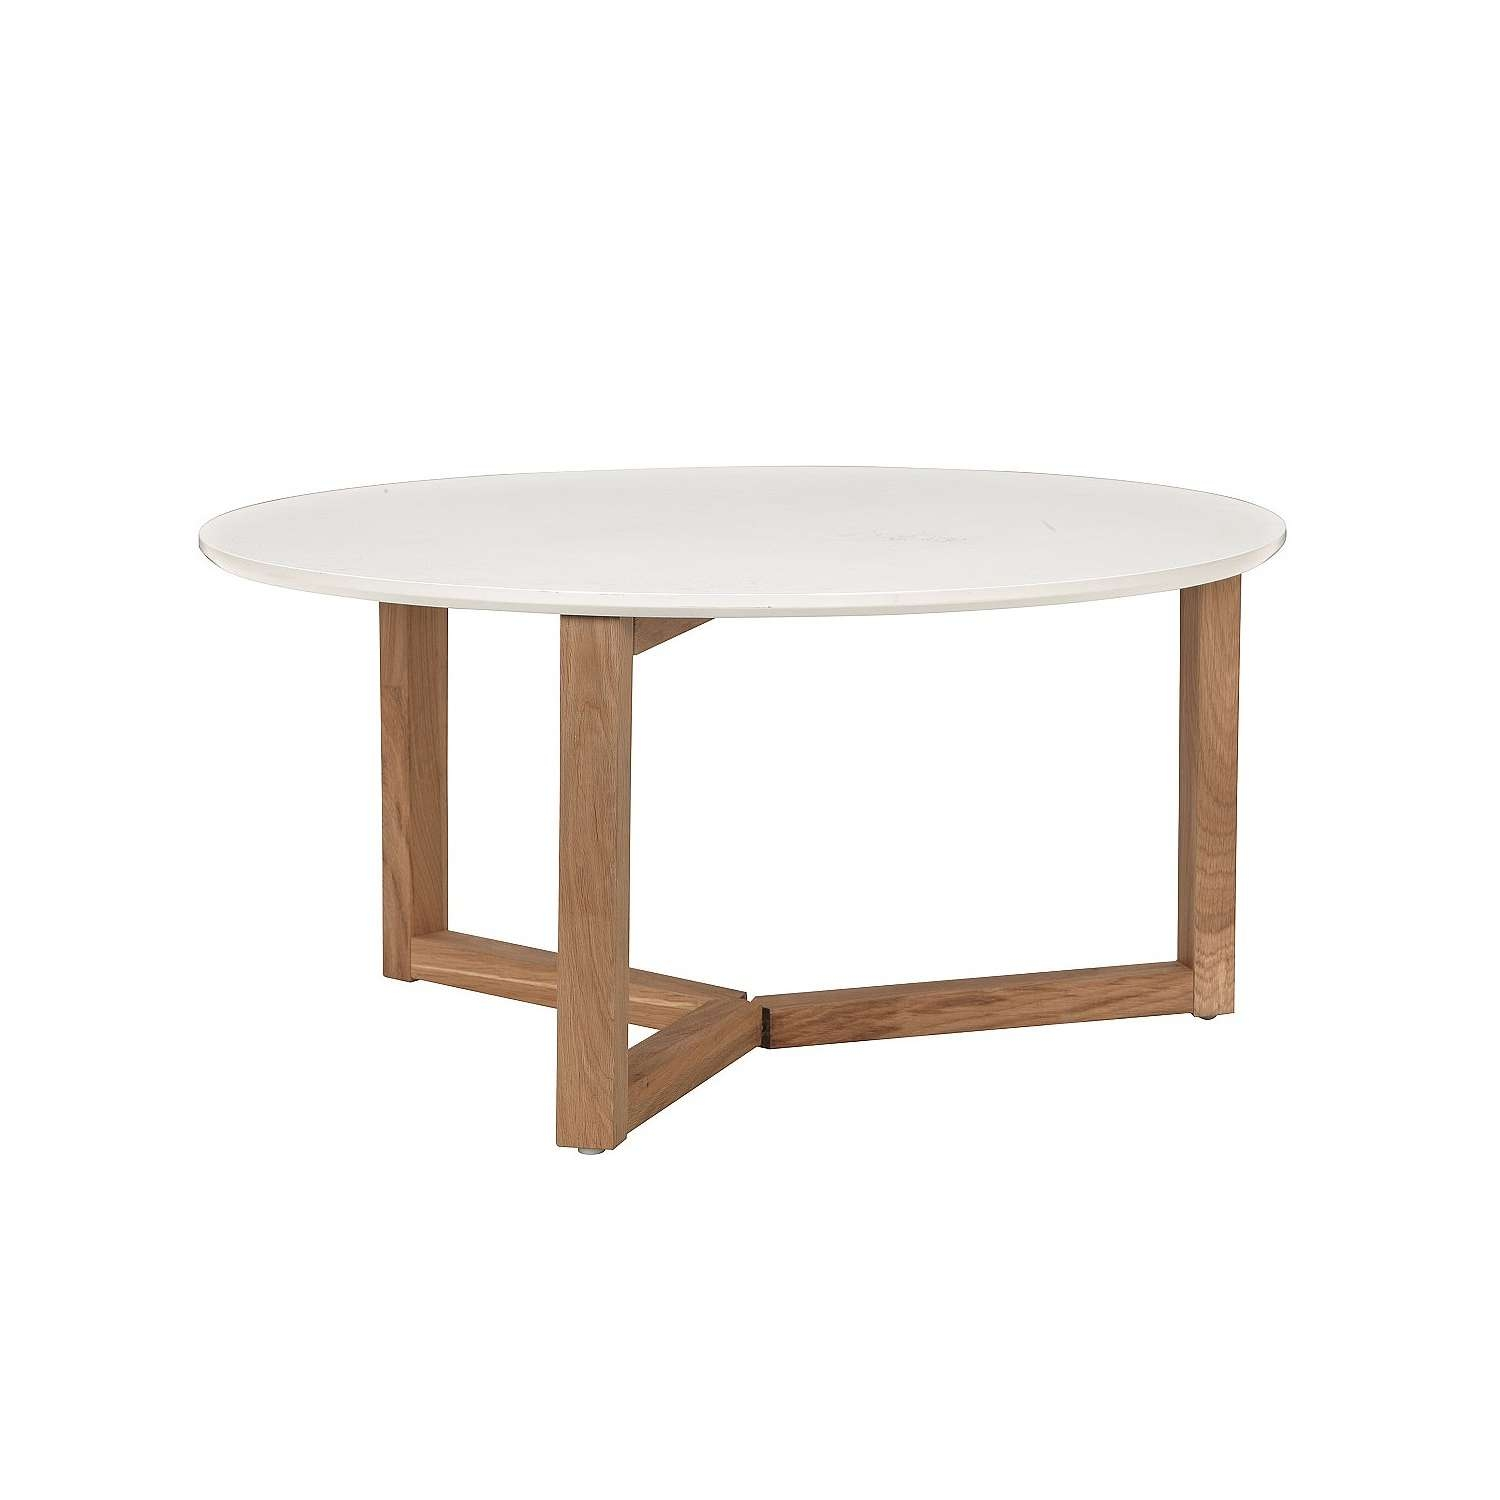 Newest Range Coffee Tables In Living Room Furniture,view Range Online Now – Stockholm Coffee (View 15 of 20)